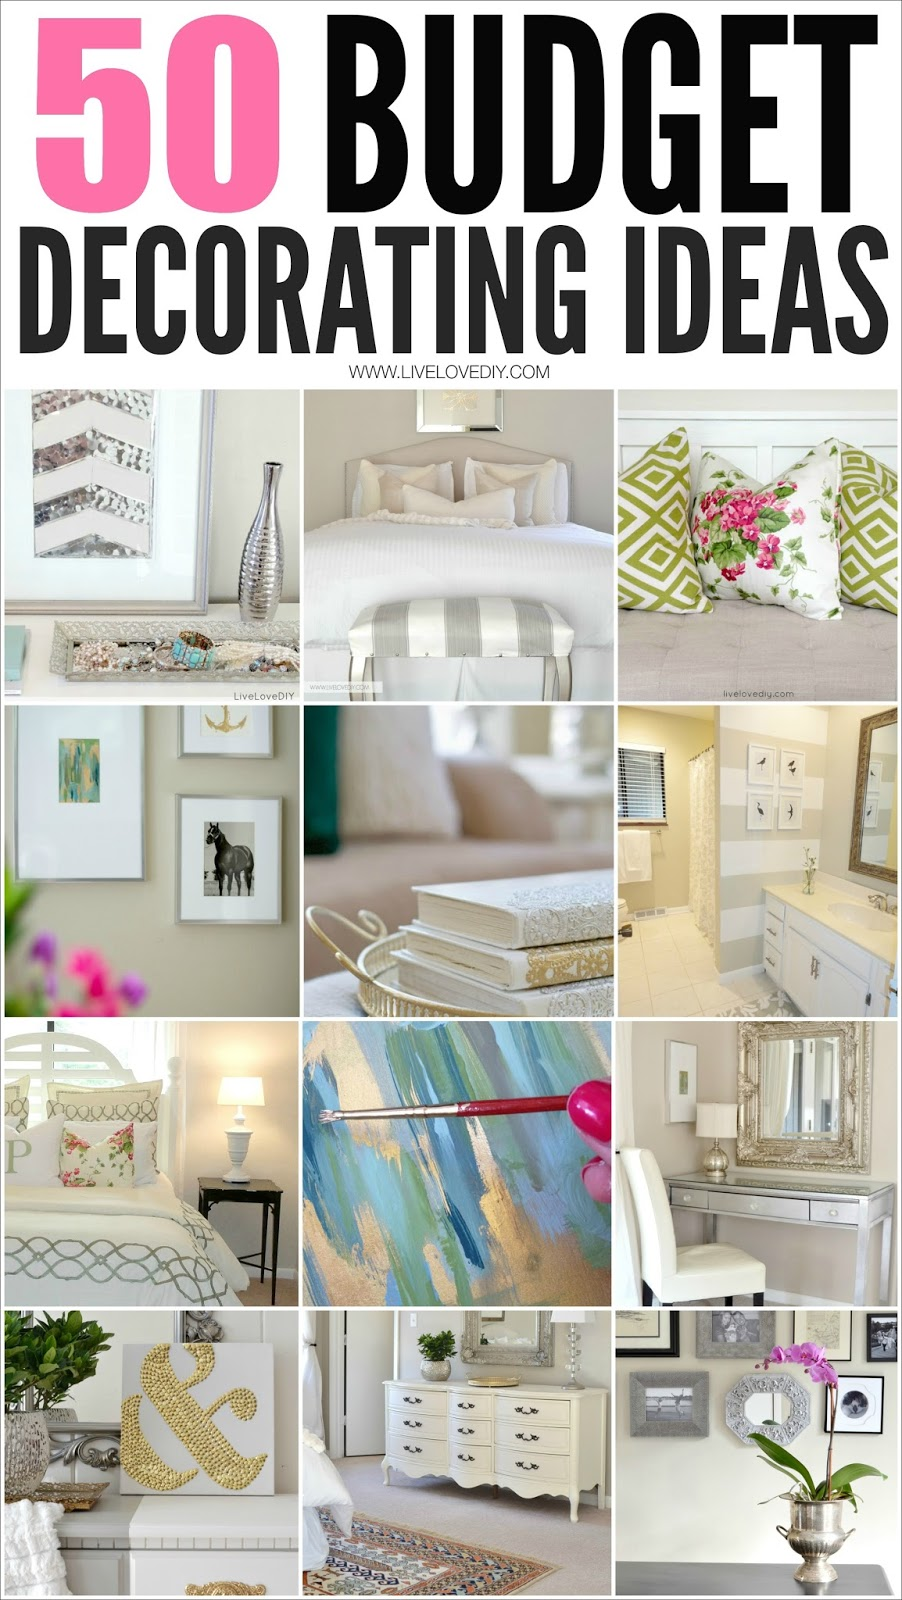 50 amazing budget decorating tips everyone should know i especially love 4 Home decor ideas living room budget